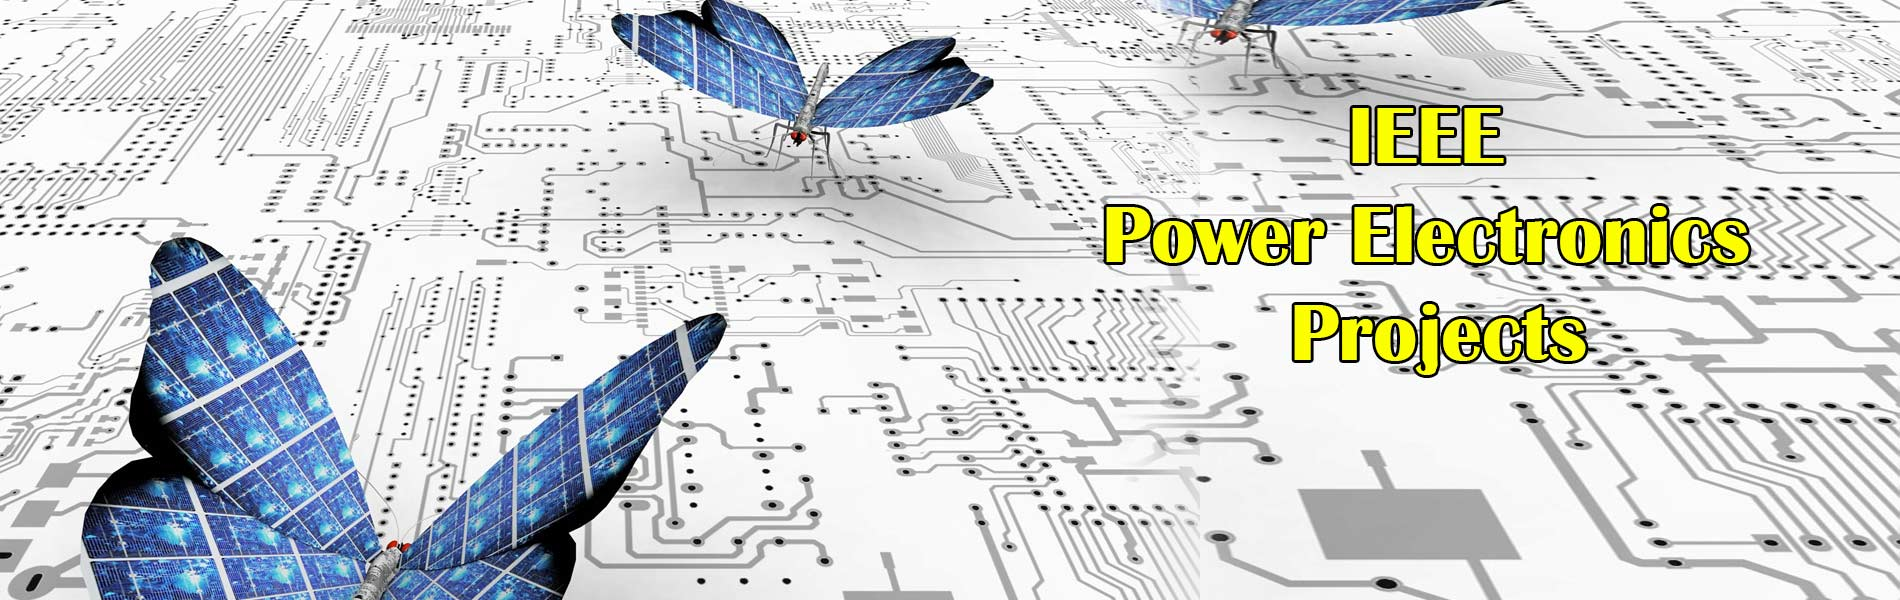 ieee-powerelectronics-finalyear-project-in-chennai